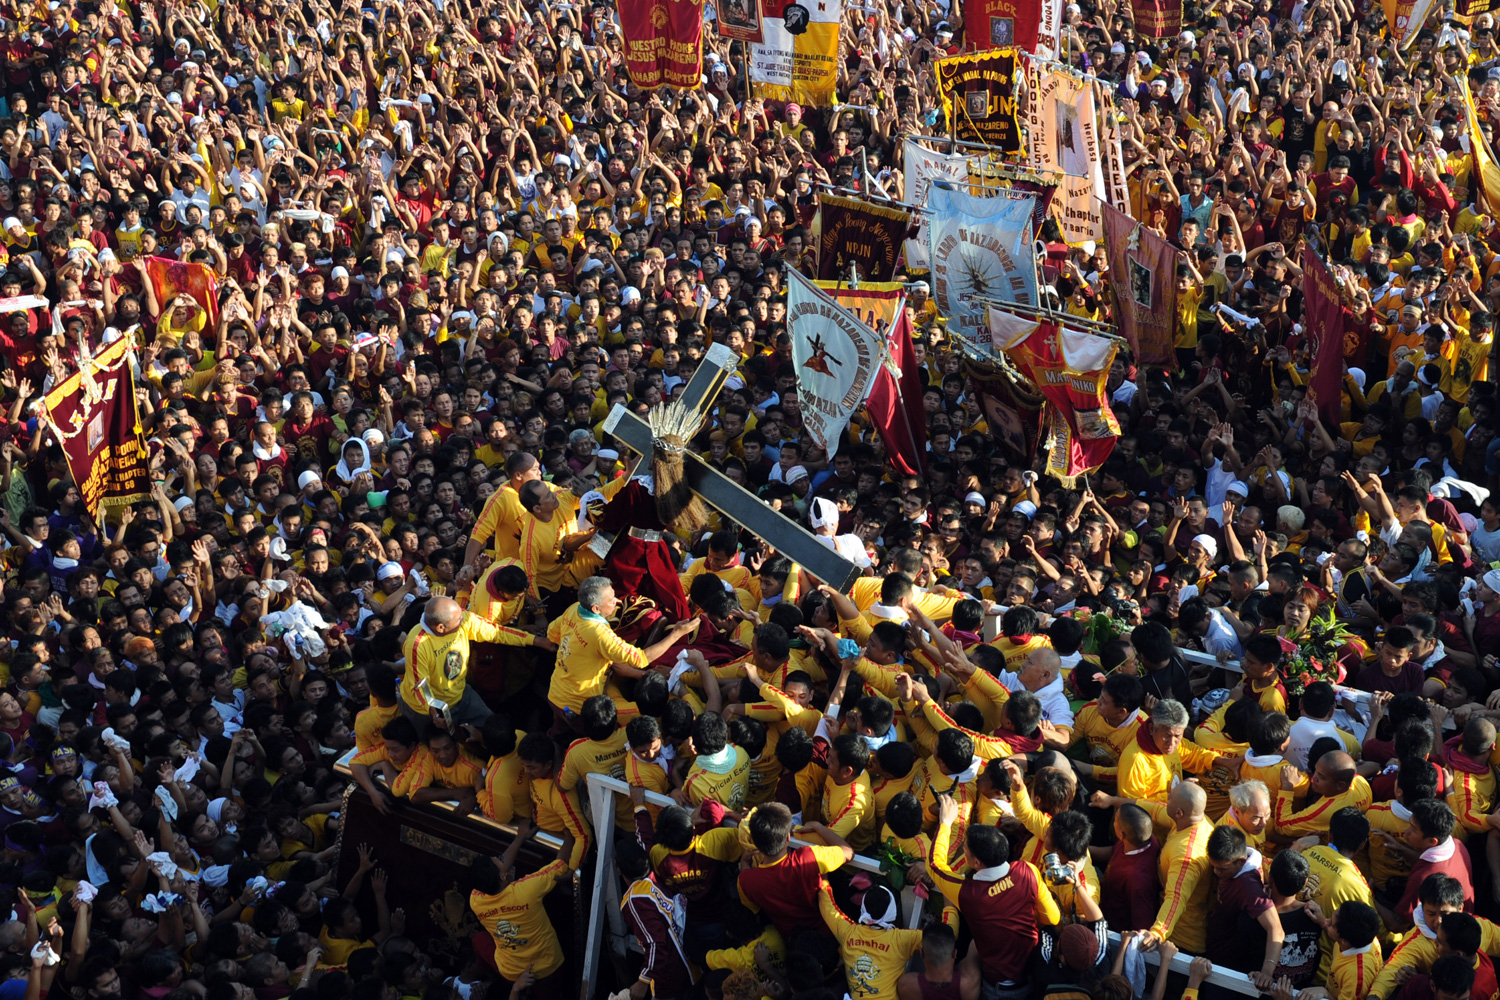 January 9, 2012. Philippine Catholic pilgrims carry the statue of the Black Nazarene, a life-size icon of Jesus Christ carrying a cross, to mark the annual day-long religious procession in Manila.